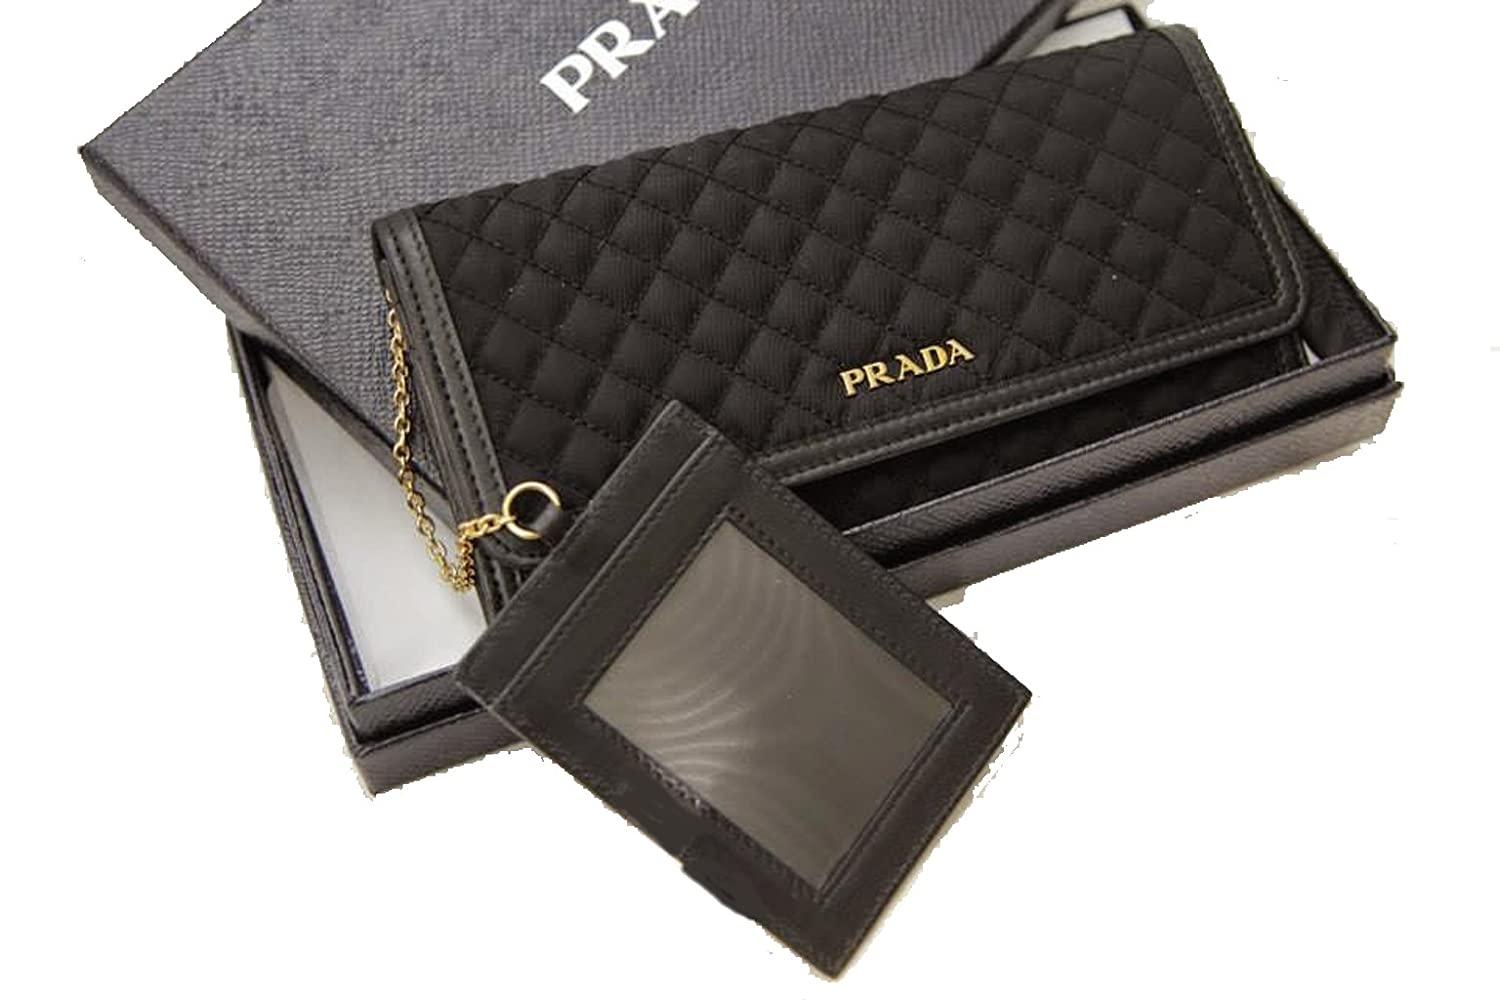 Prada Tessuto Nylon \u0026amp; Soft Calf Leather Crossbody Shoulder Wallet ...